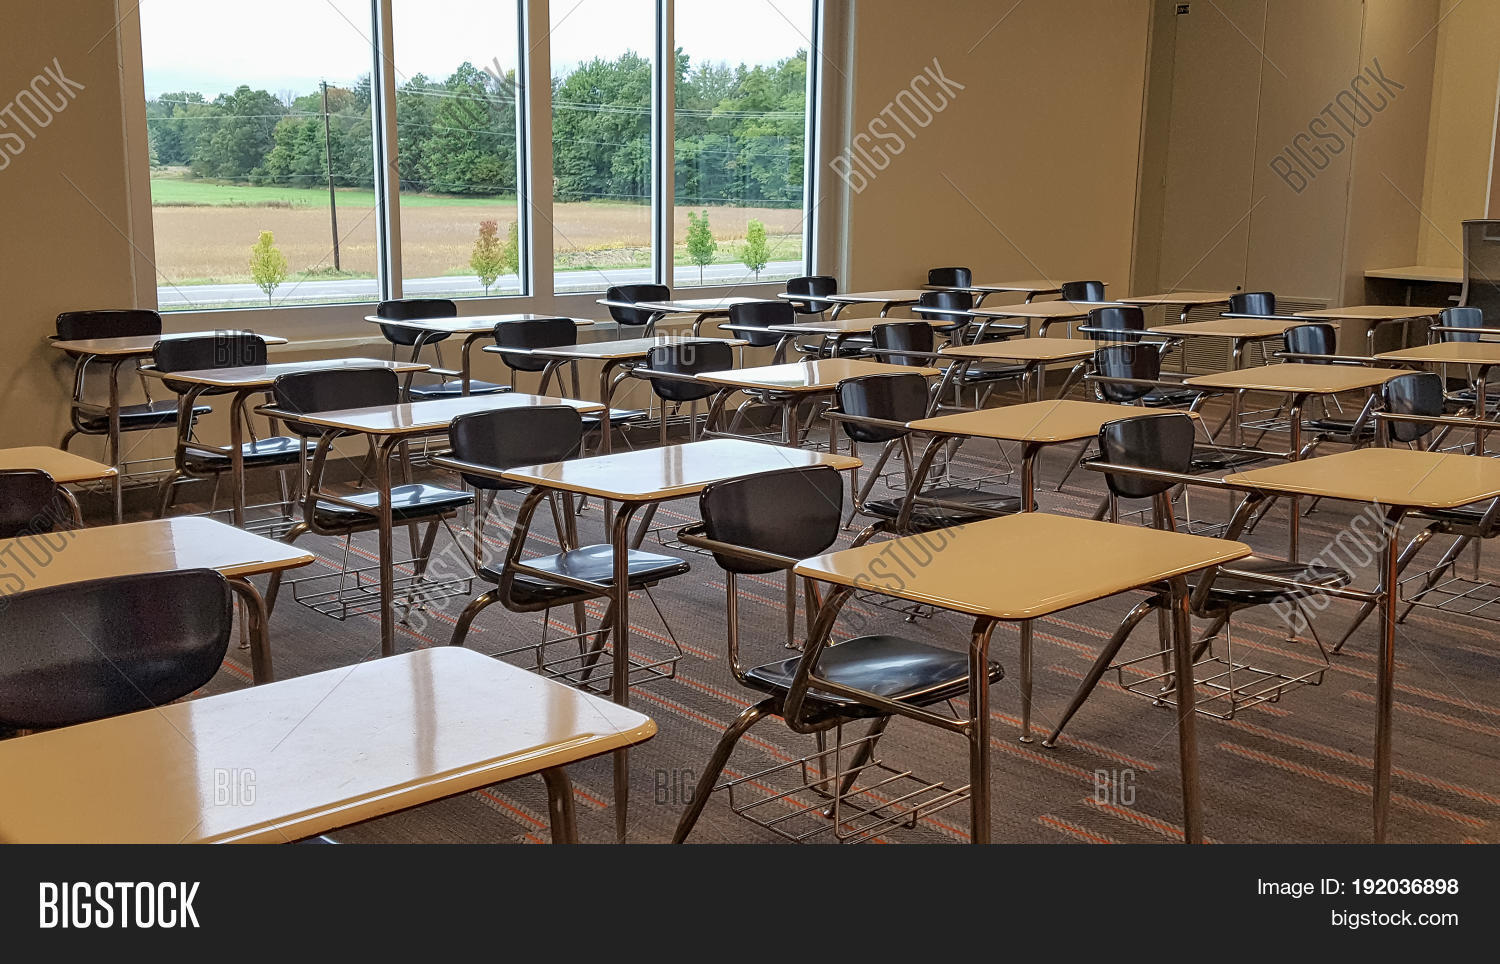 Rows Vacant School Image & Photo (Free Trial) | Bigstock